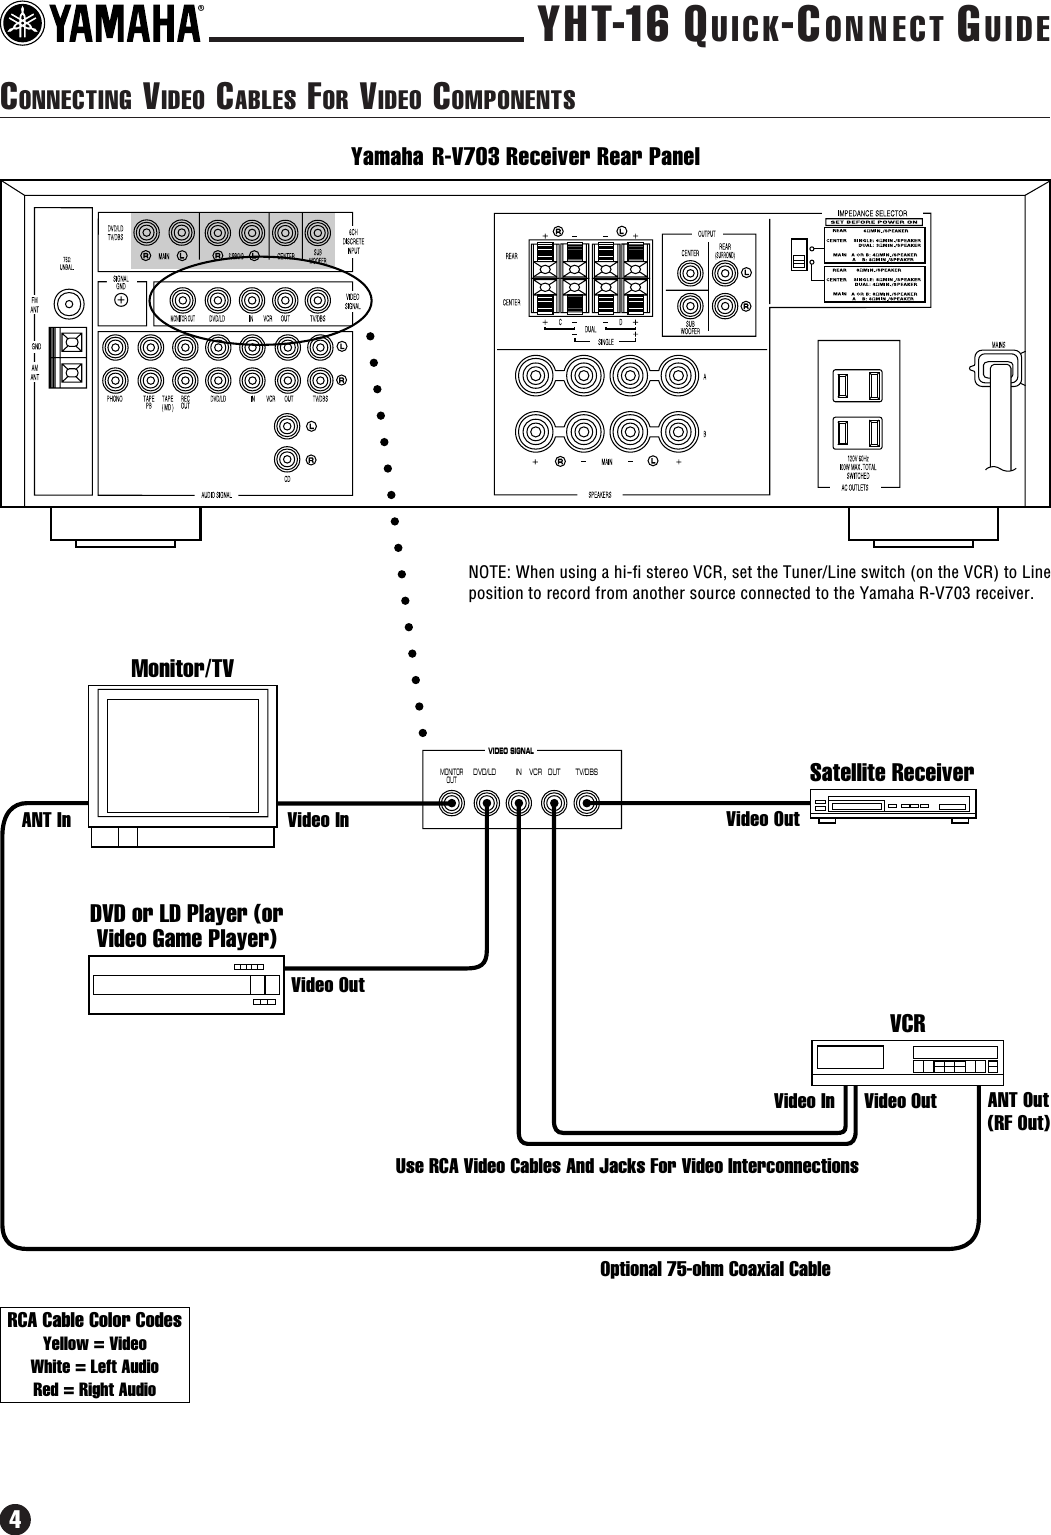 Yamaha YHT 16 Quick Connect Connection Diagram YHT16QC